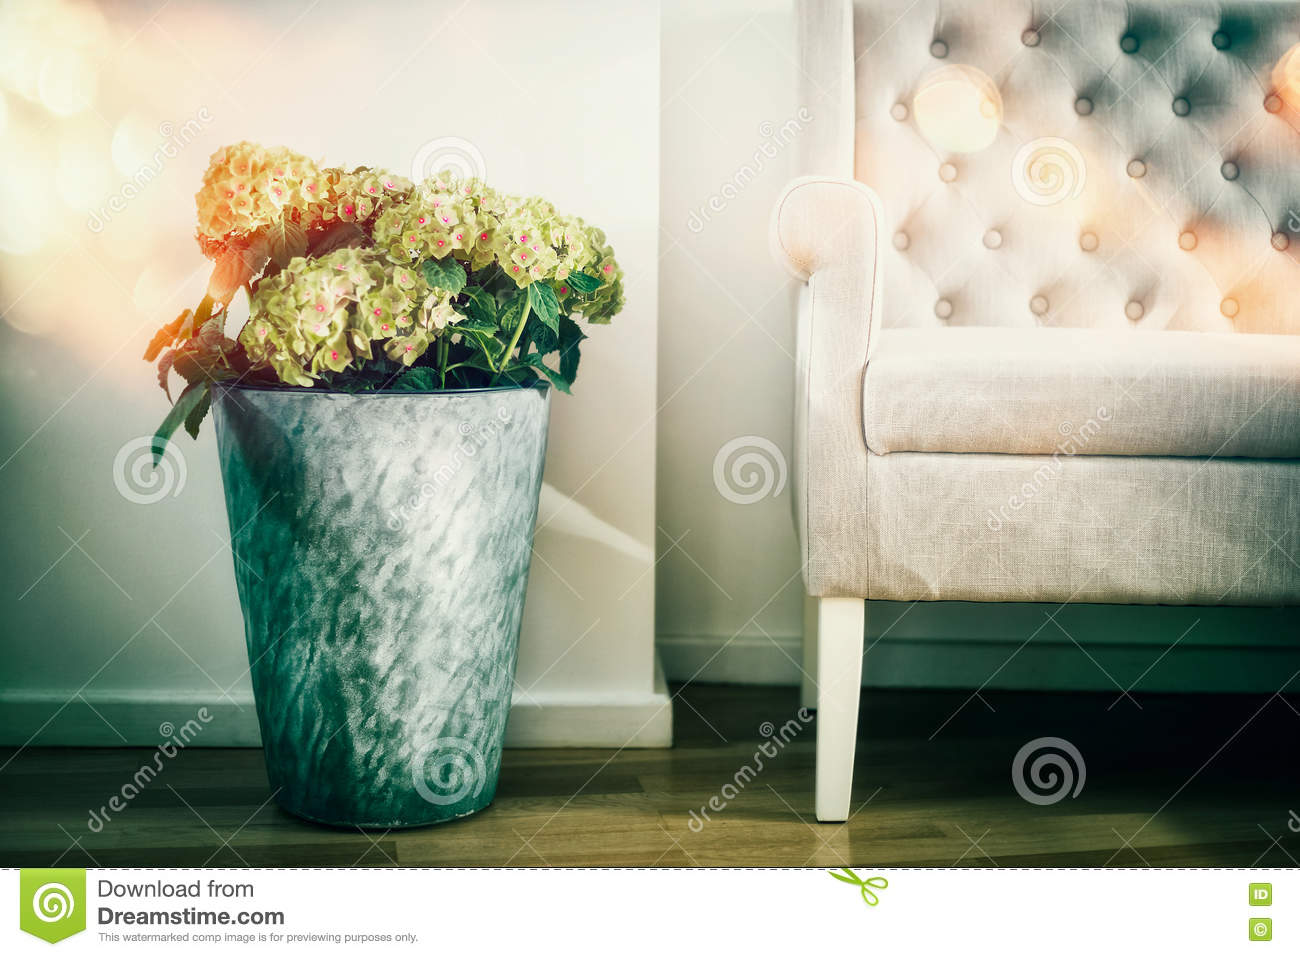 Sensational Home Interior Decoration With Flowers Floor Vase And White Gamerscity Chair Design For Home Gamerscityorg